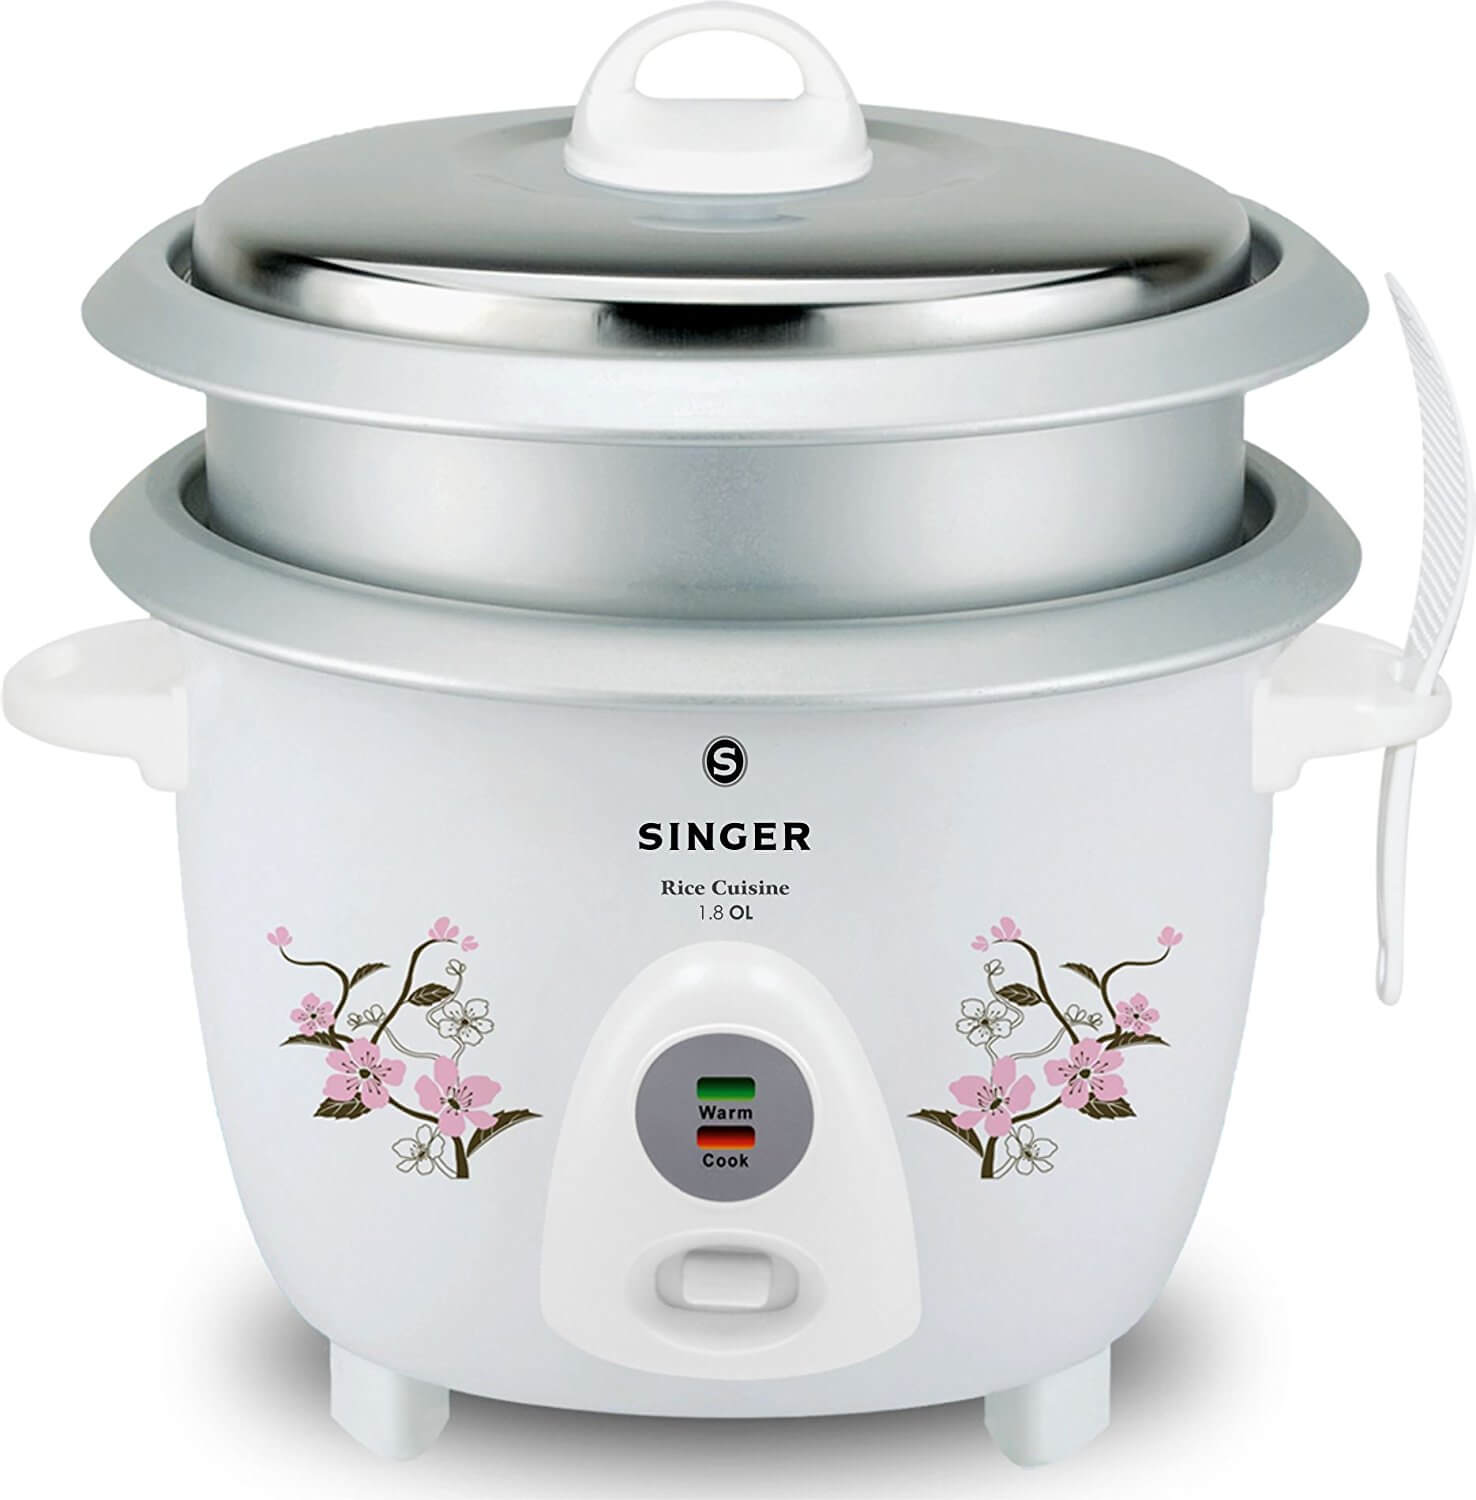 Singer Rice Cuisine 1.8 L Open Lid Rice Cooker 700 watts with 2 Bowls